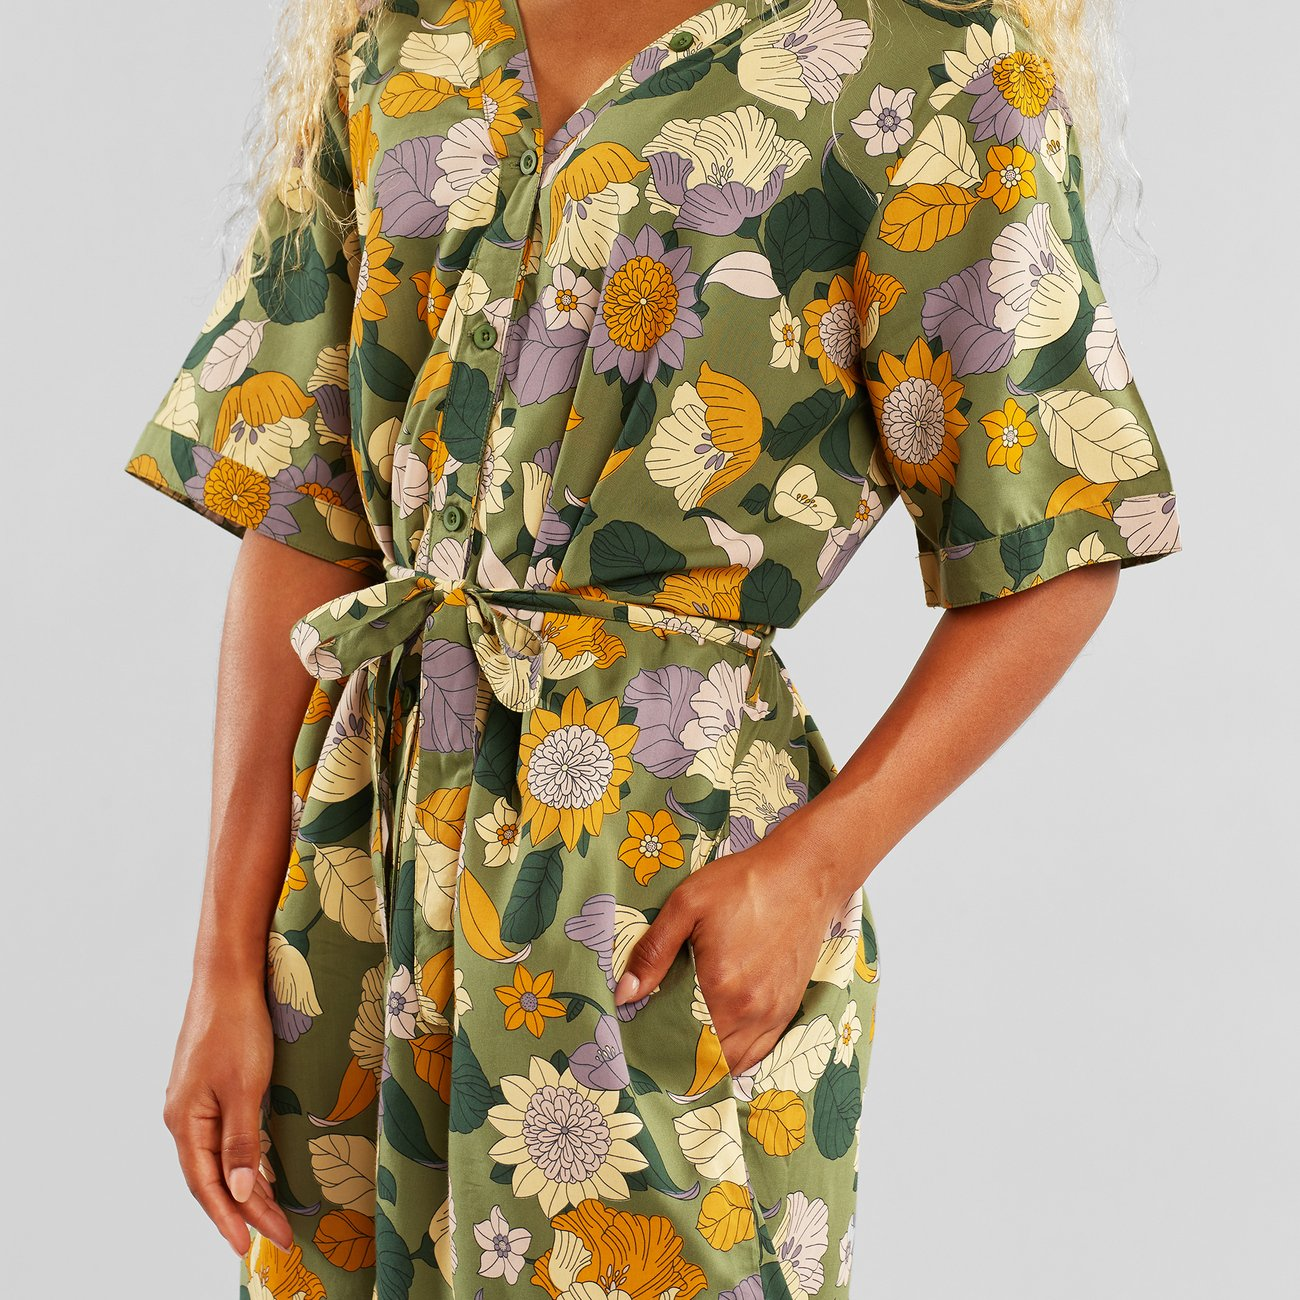 Dedicated - Dress Bornholm Seventies Floral Green